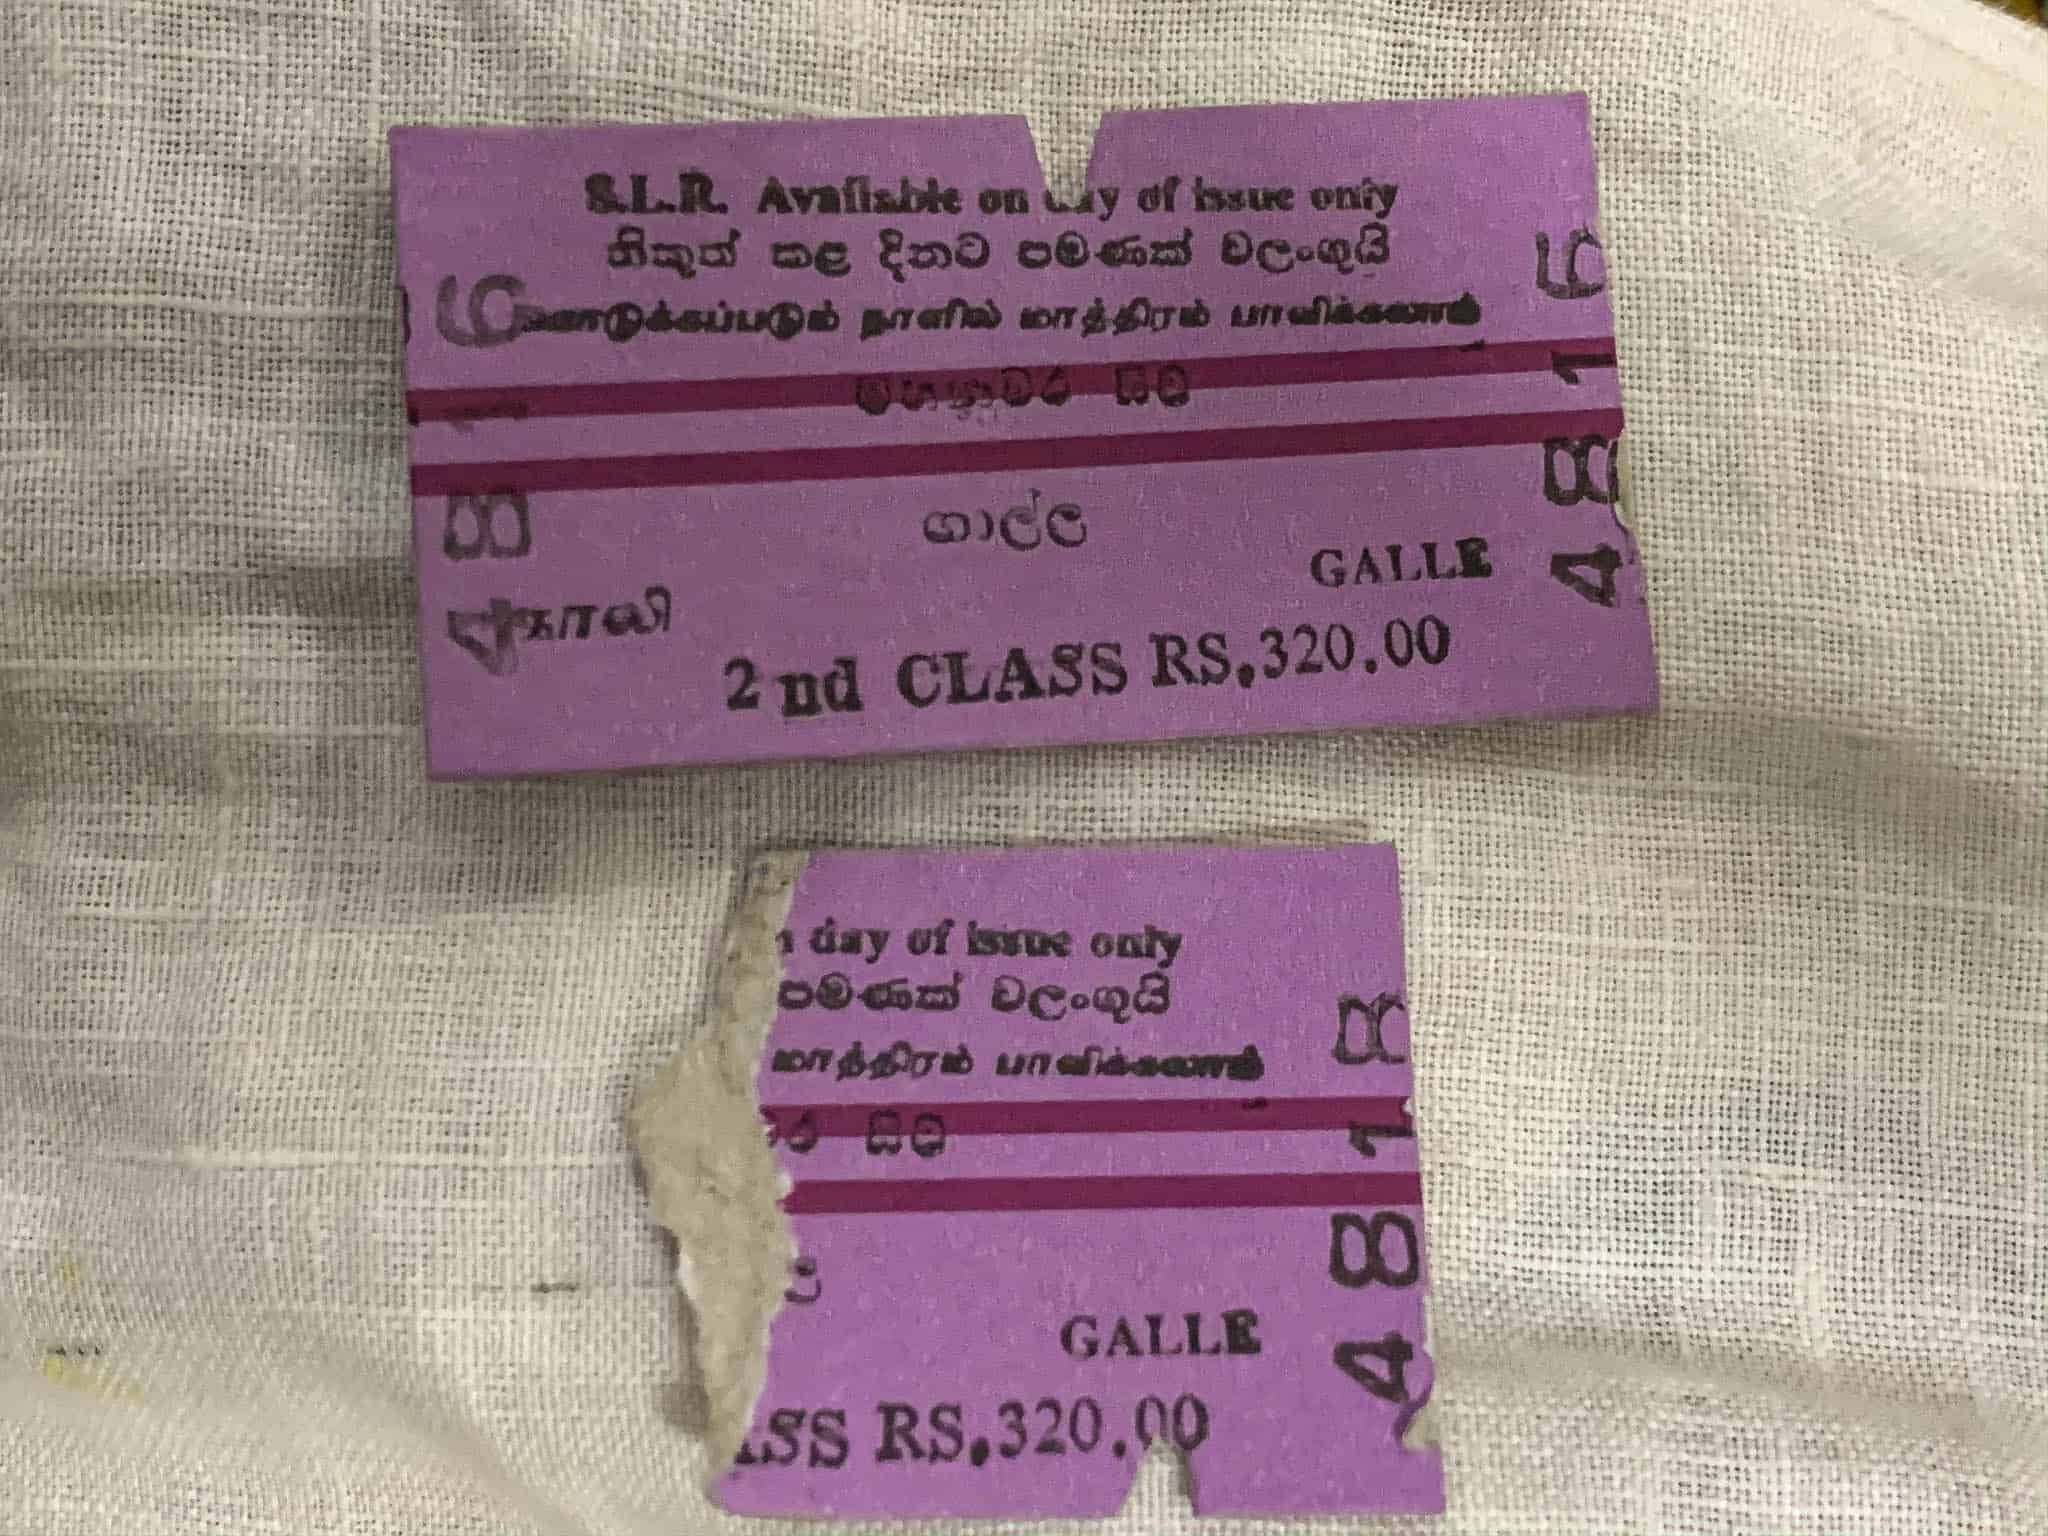 train tickets in Sri Lanka